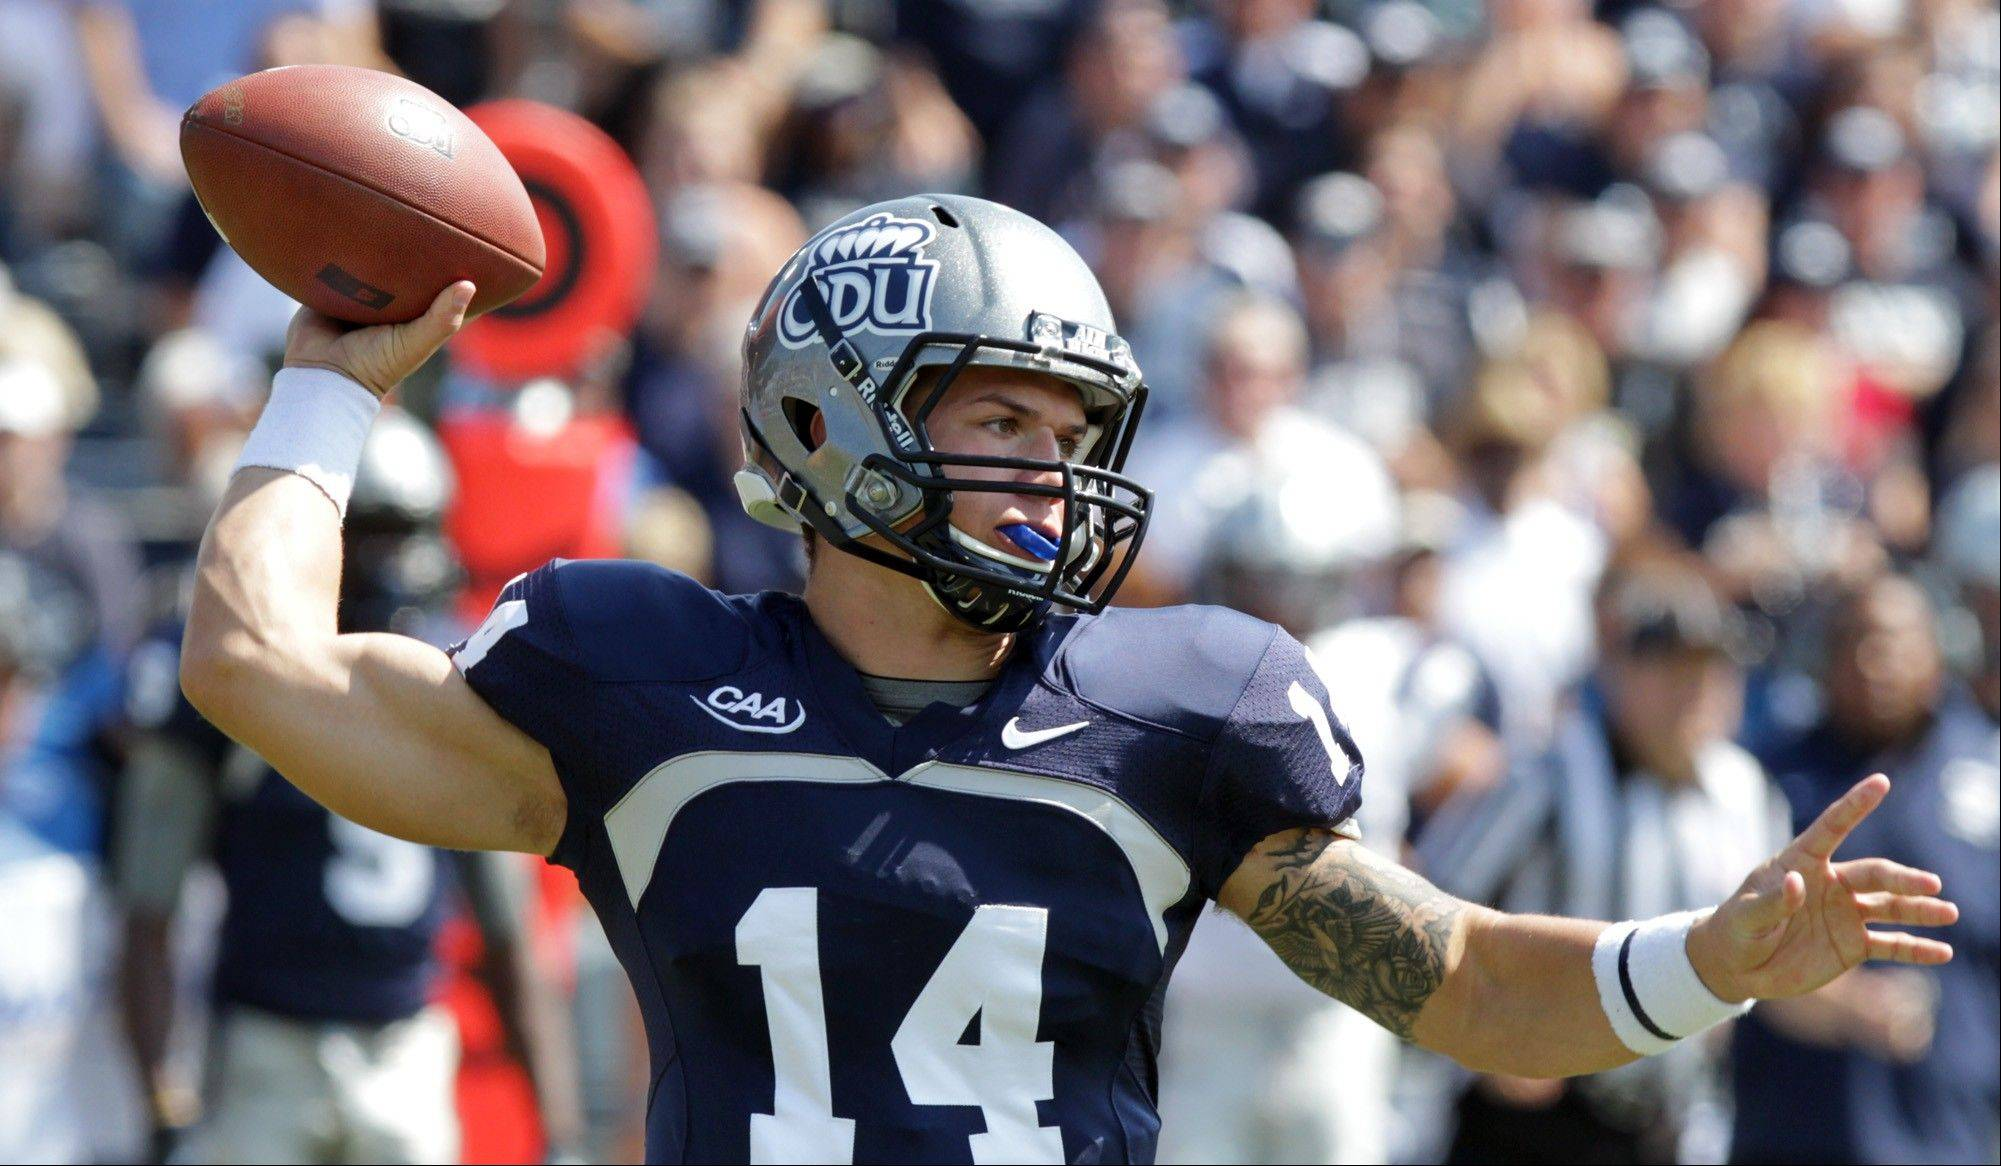 Old Dominion quarterback Taylor Heinicke throws a pass against New Hampshire on Saturday in Norfolk, Va. Heinicke set an NCAA record for passing yards (730) in the game.